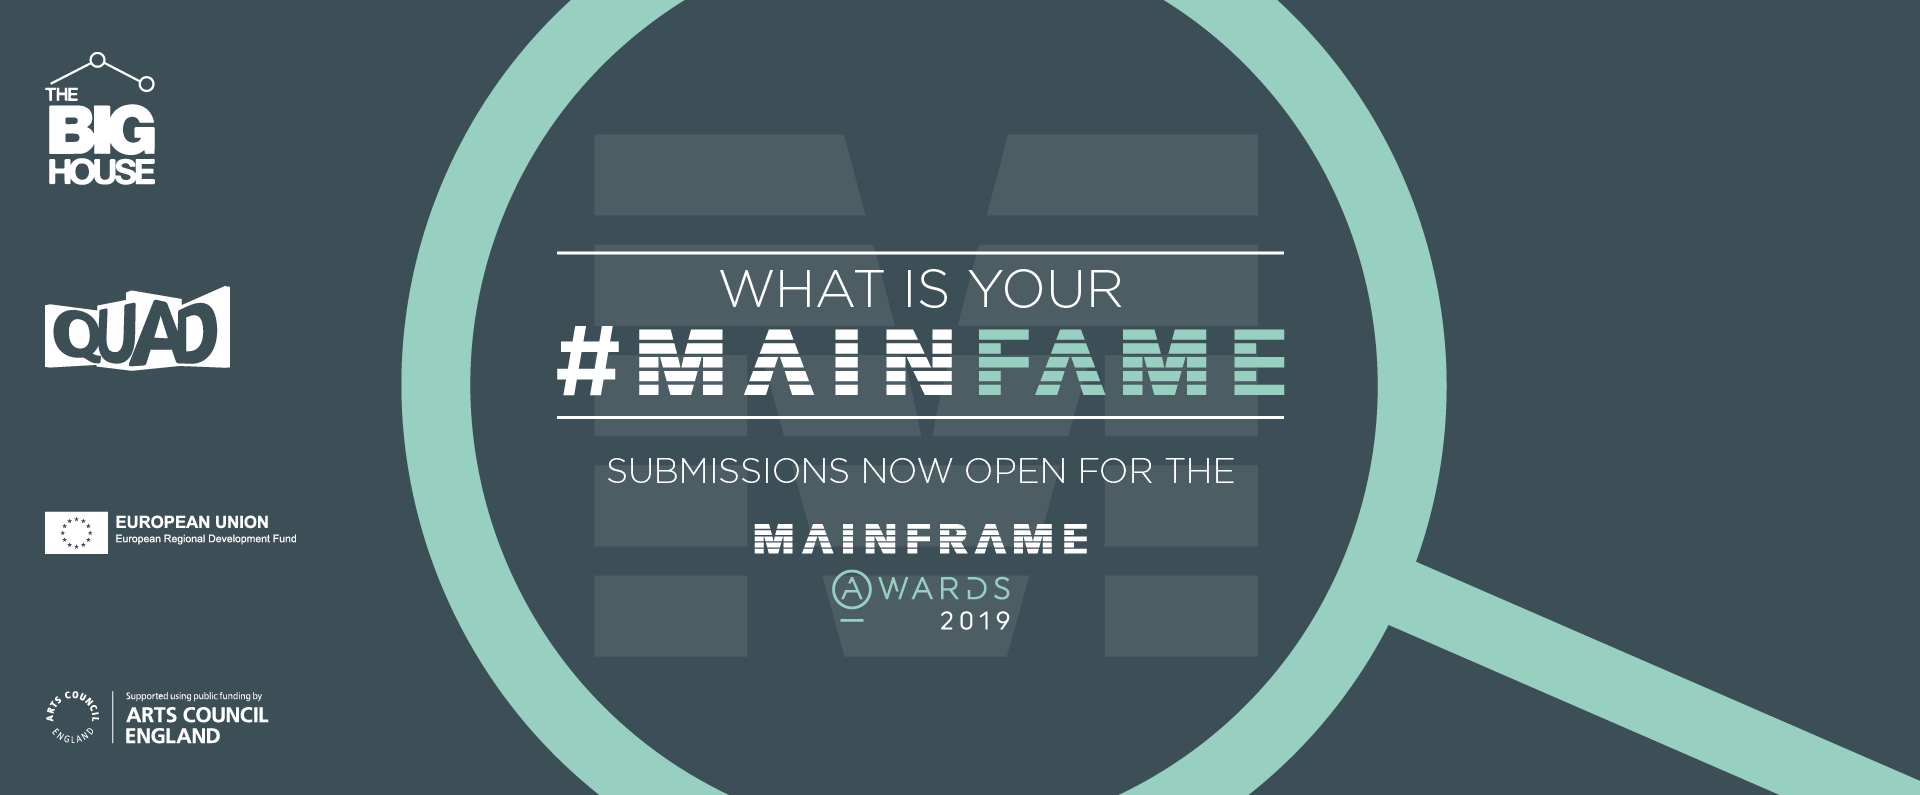 mainframe-website-headers-01-2-2